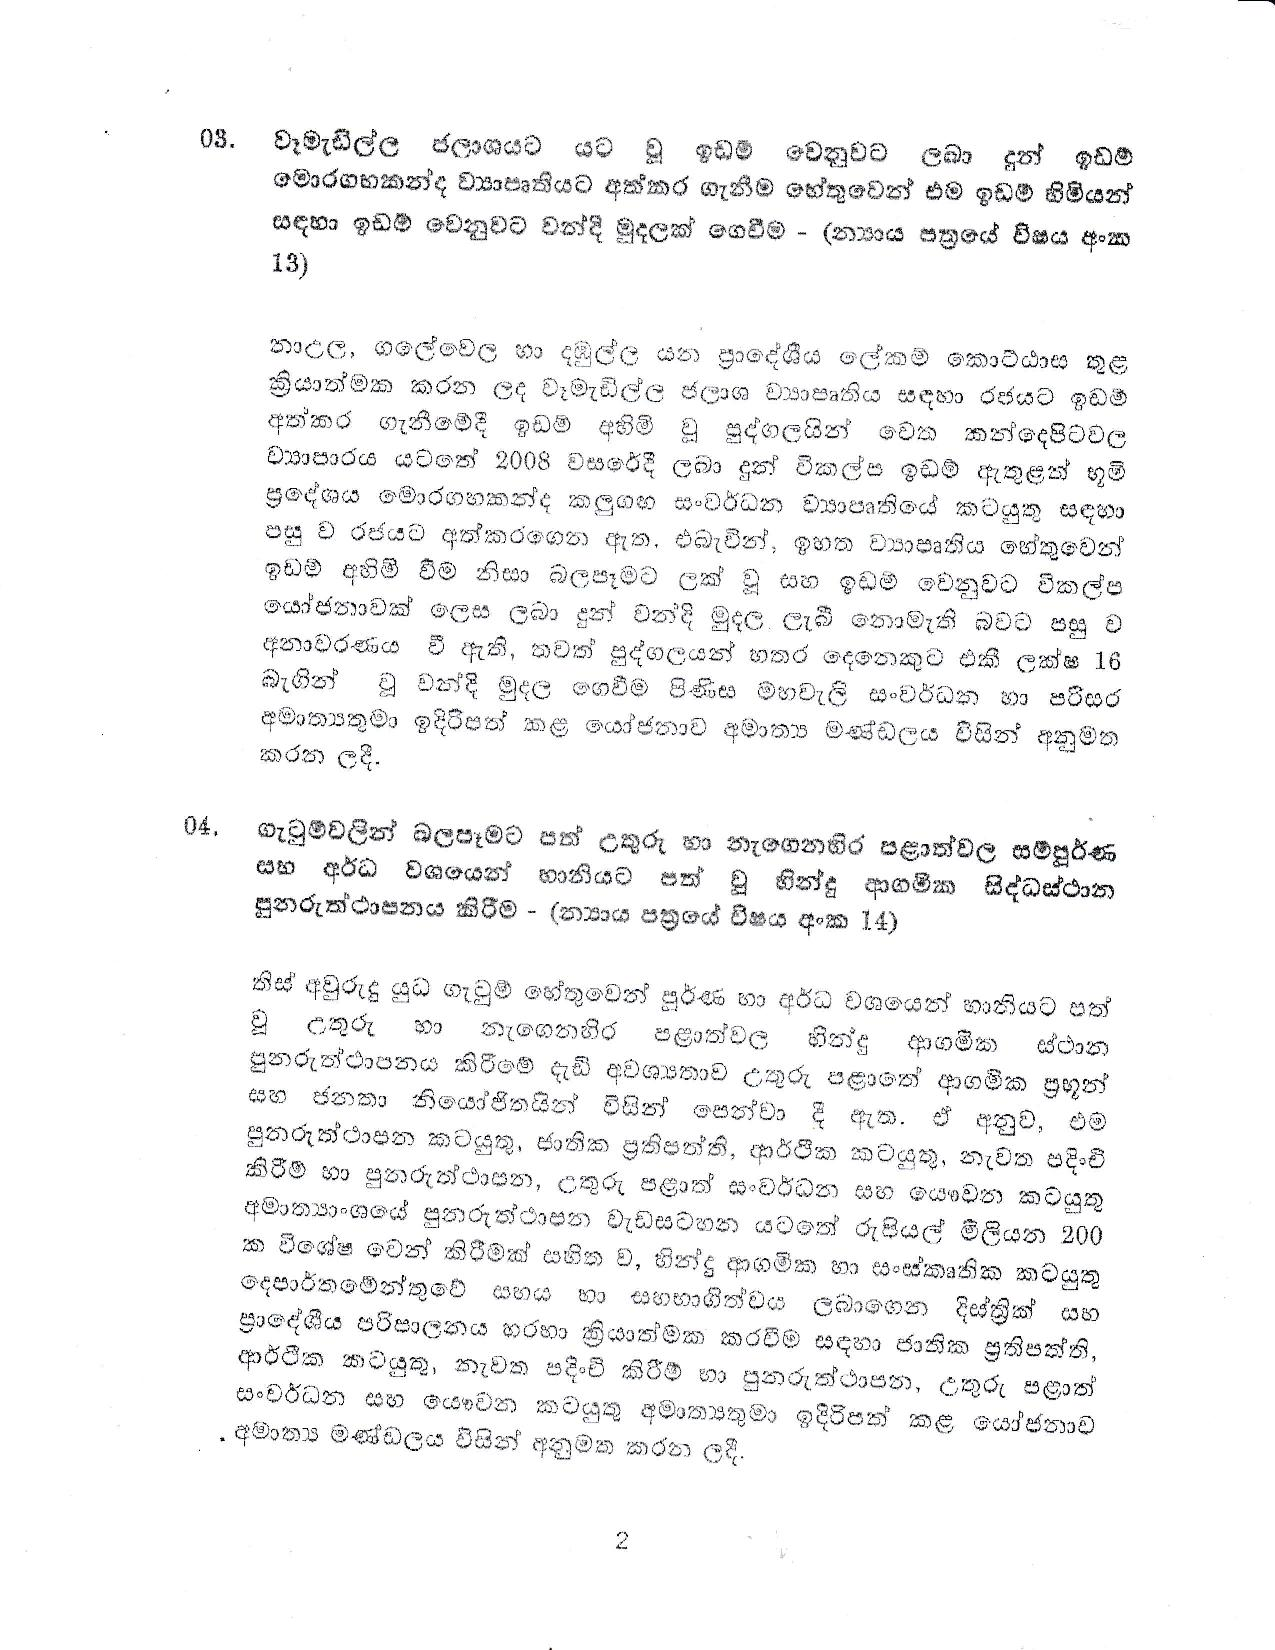 Cabinet Decision 27.08.2019 page 002